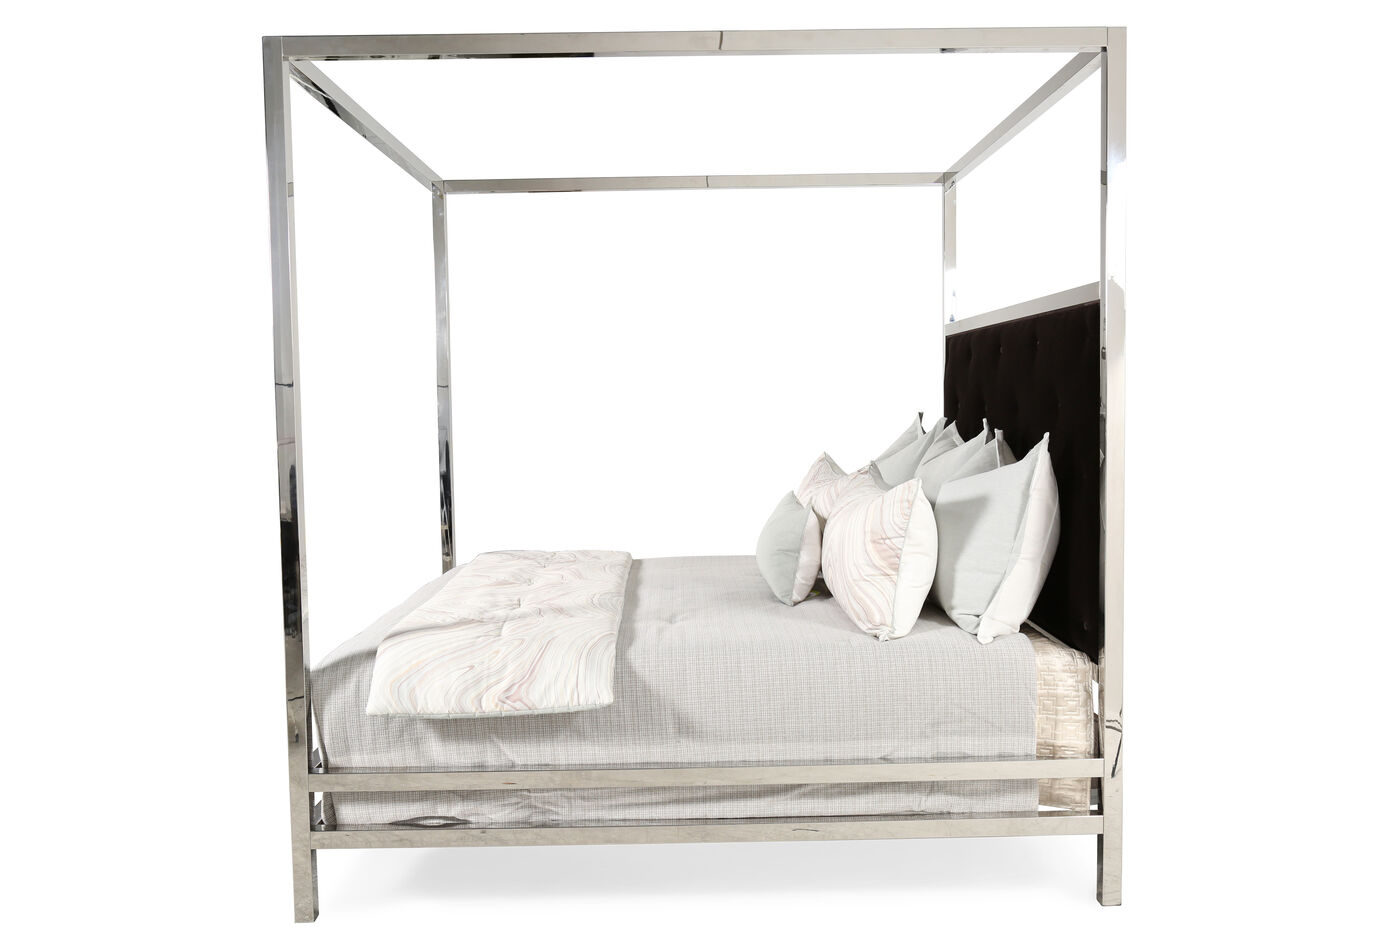 90 modern stainless steel poster bed in silver mathis - Stainless steel bedroom furniture ...